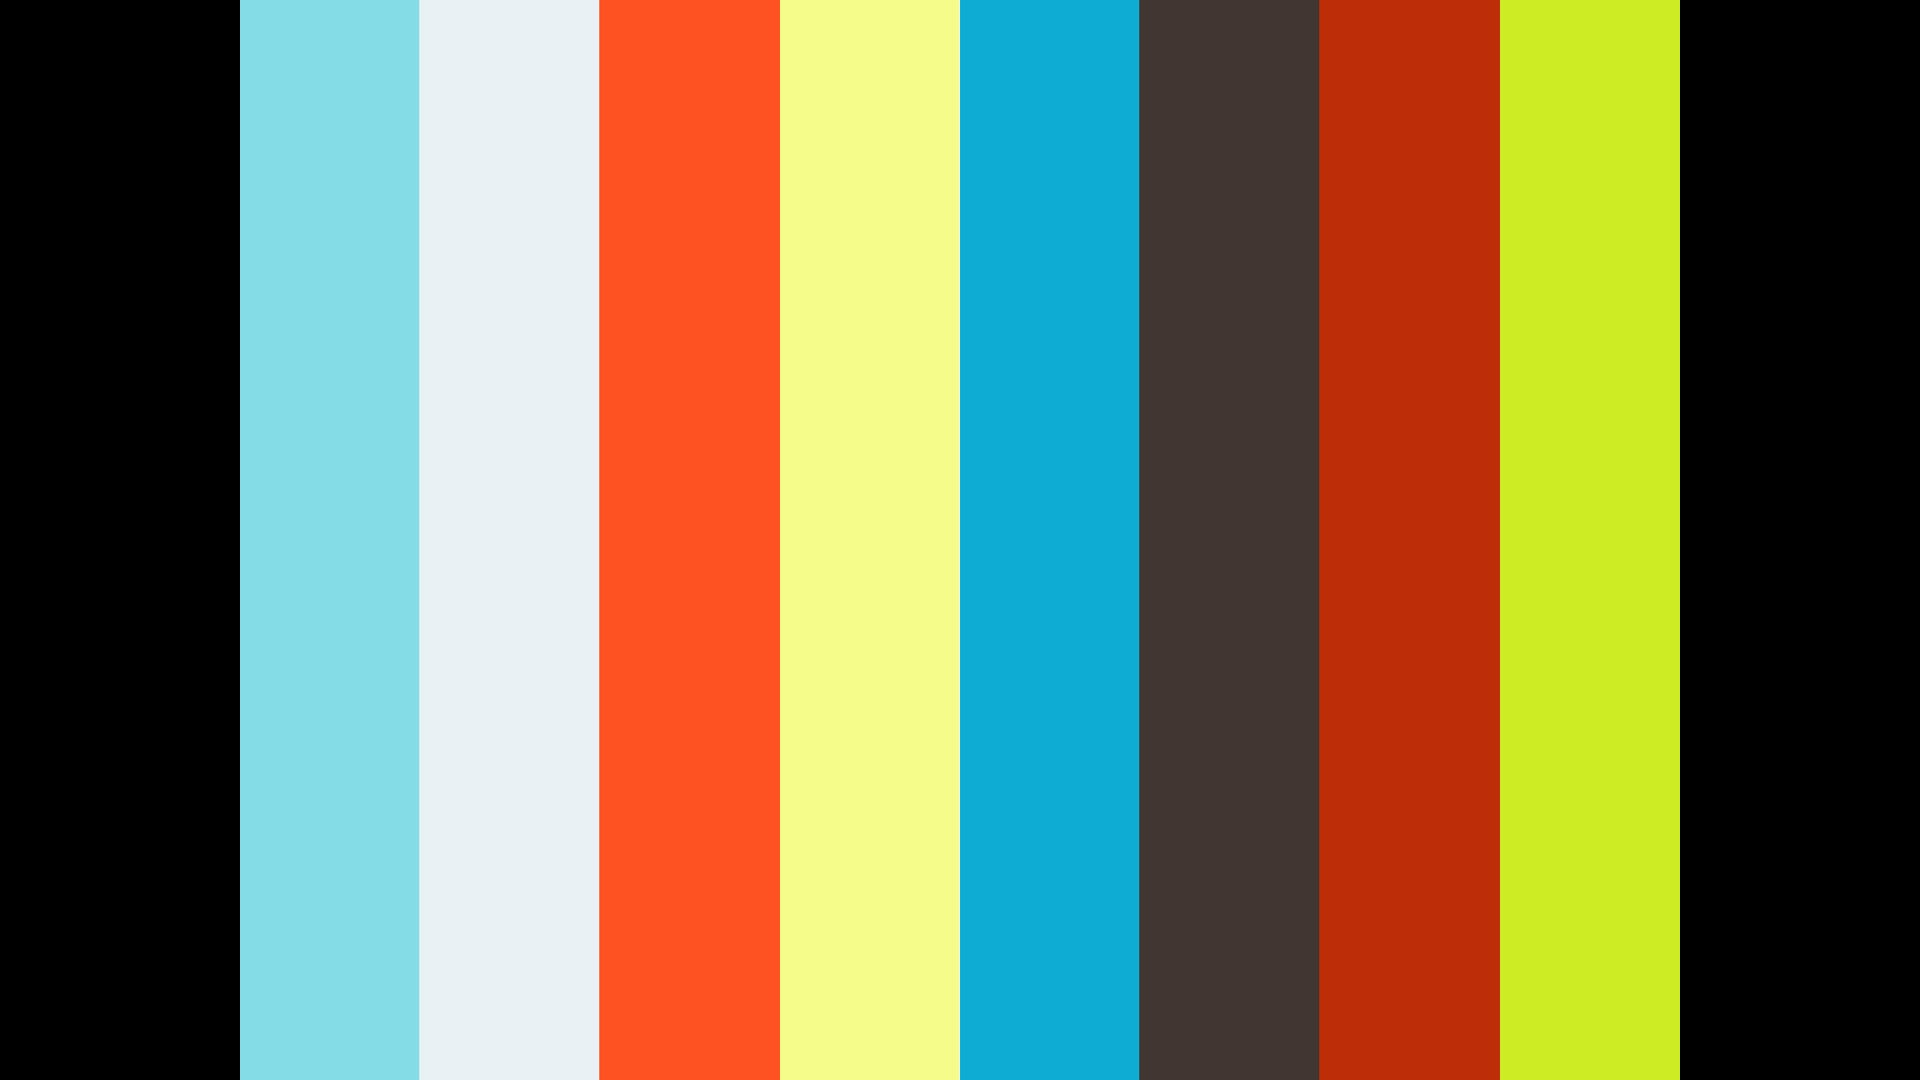 ecko360 Services Overview